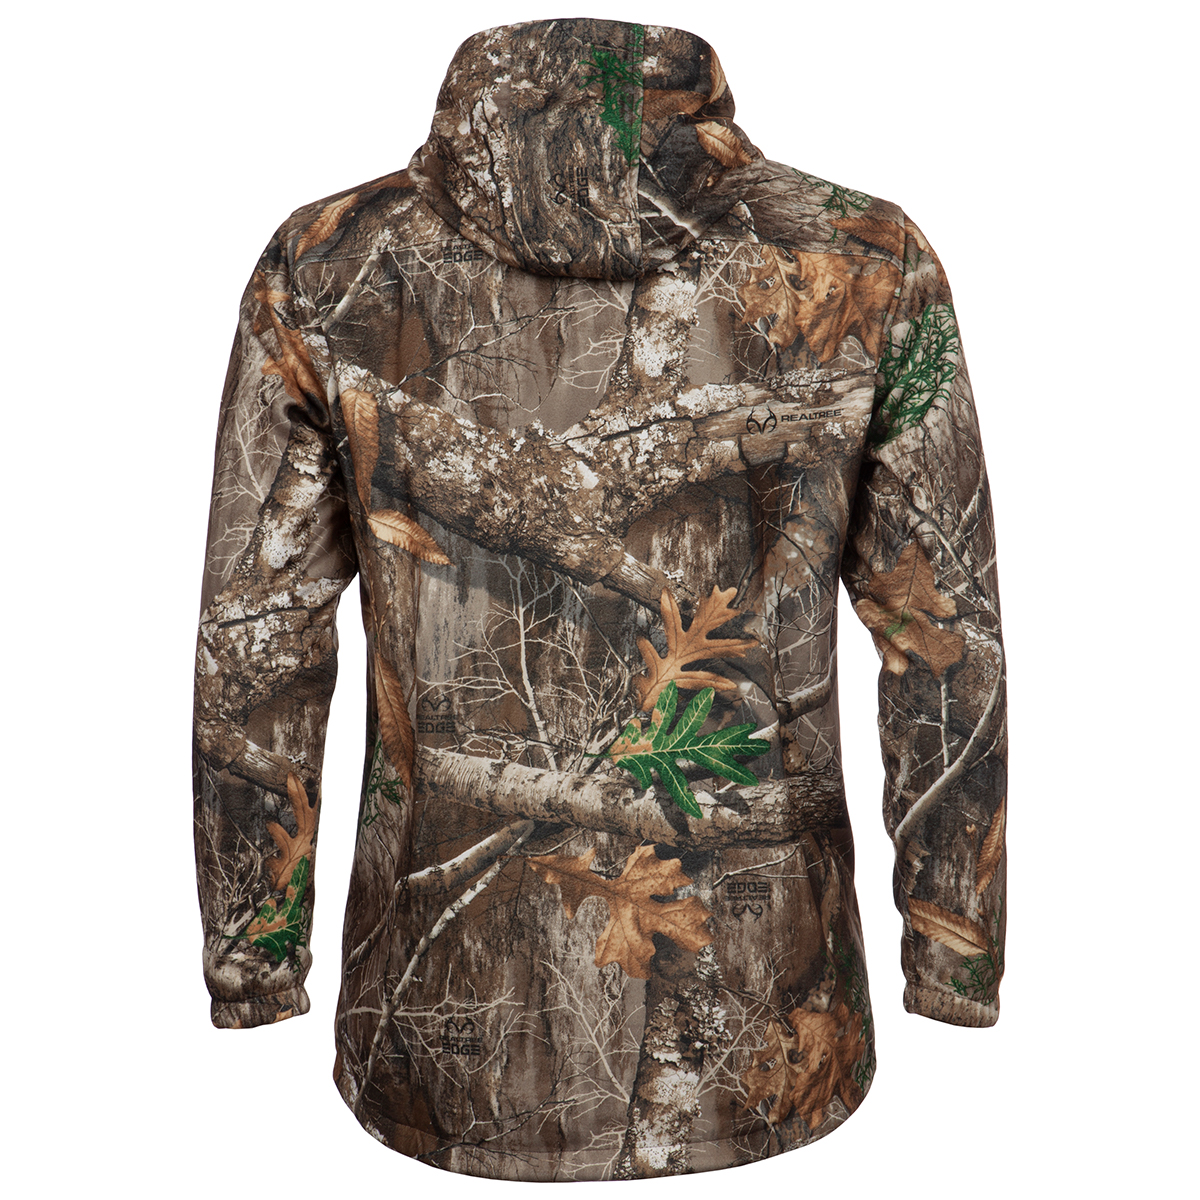 Scent-Blocker-Wooltex-Windproof-Insulated-Parka-Big-Tall-Hunt-BigCamo-Back